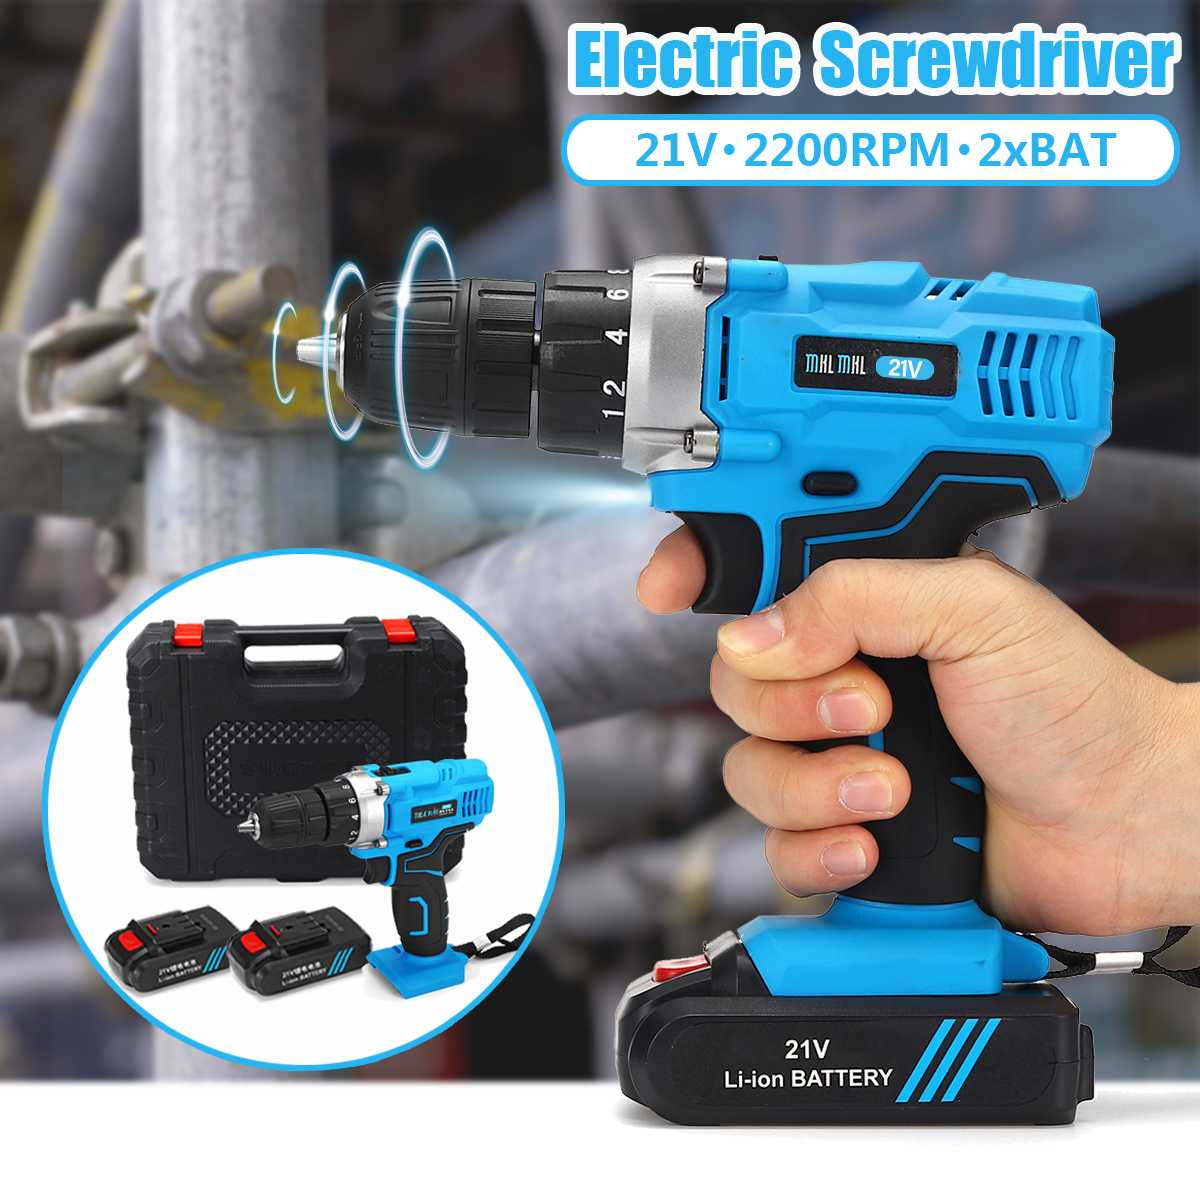 21V Double Speed Mini Electric Screwdriver Cordless Drill 2XLithium Batteries Rechargable +1 Charger DIY Power Tool 2200 RPM21V Double Speed Mini Electric Screwdriver Cordless Drill 2XLithium Batteries Rechargable +1 Charger DIY Power Tool 2200 RPM